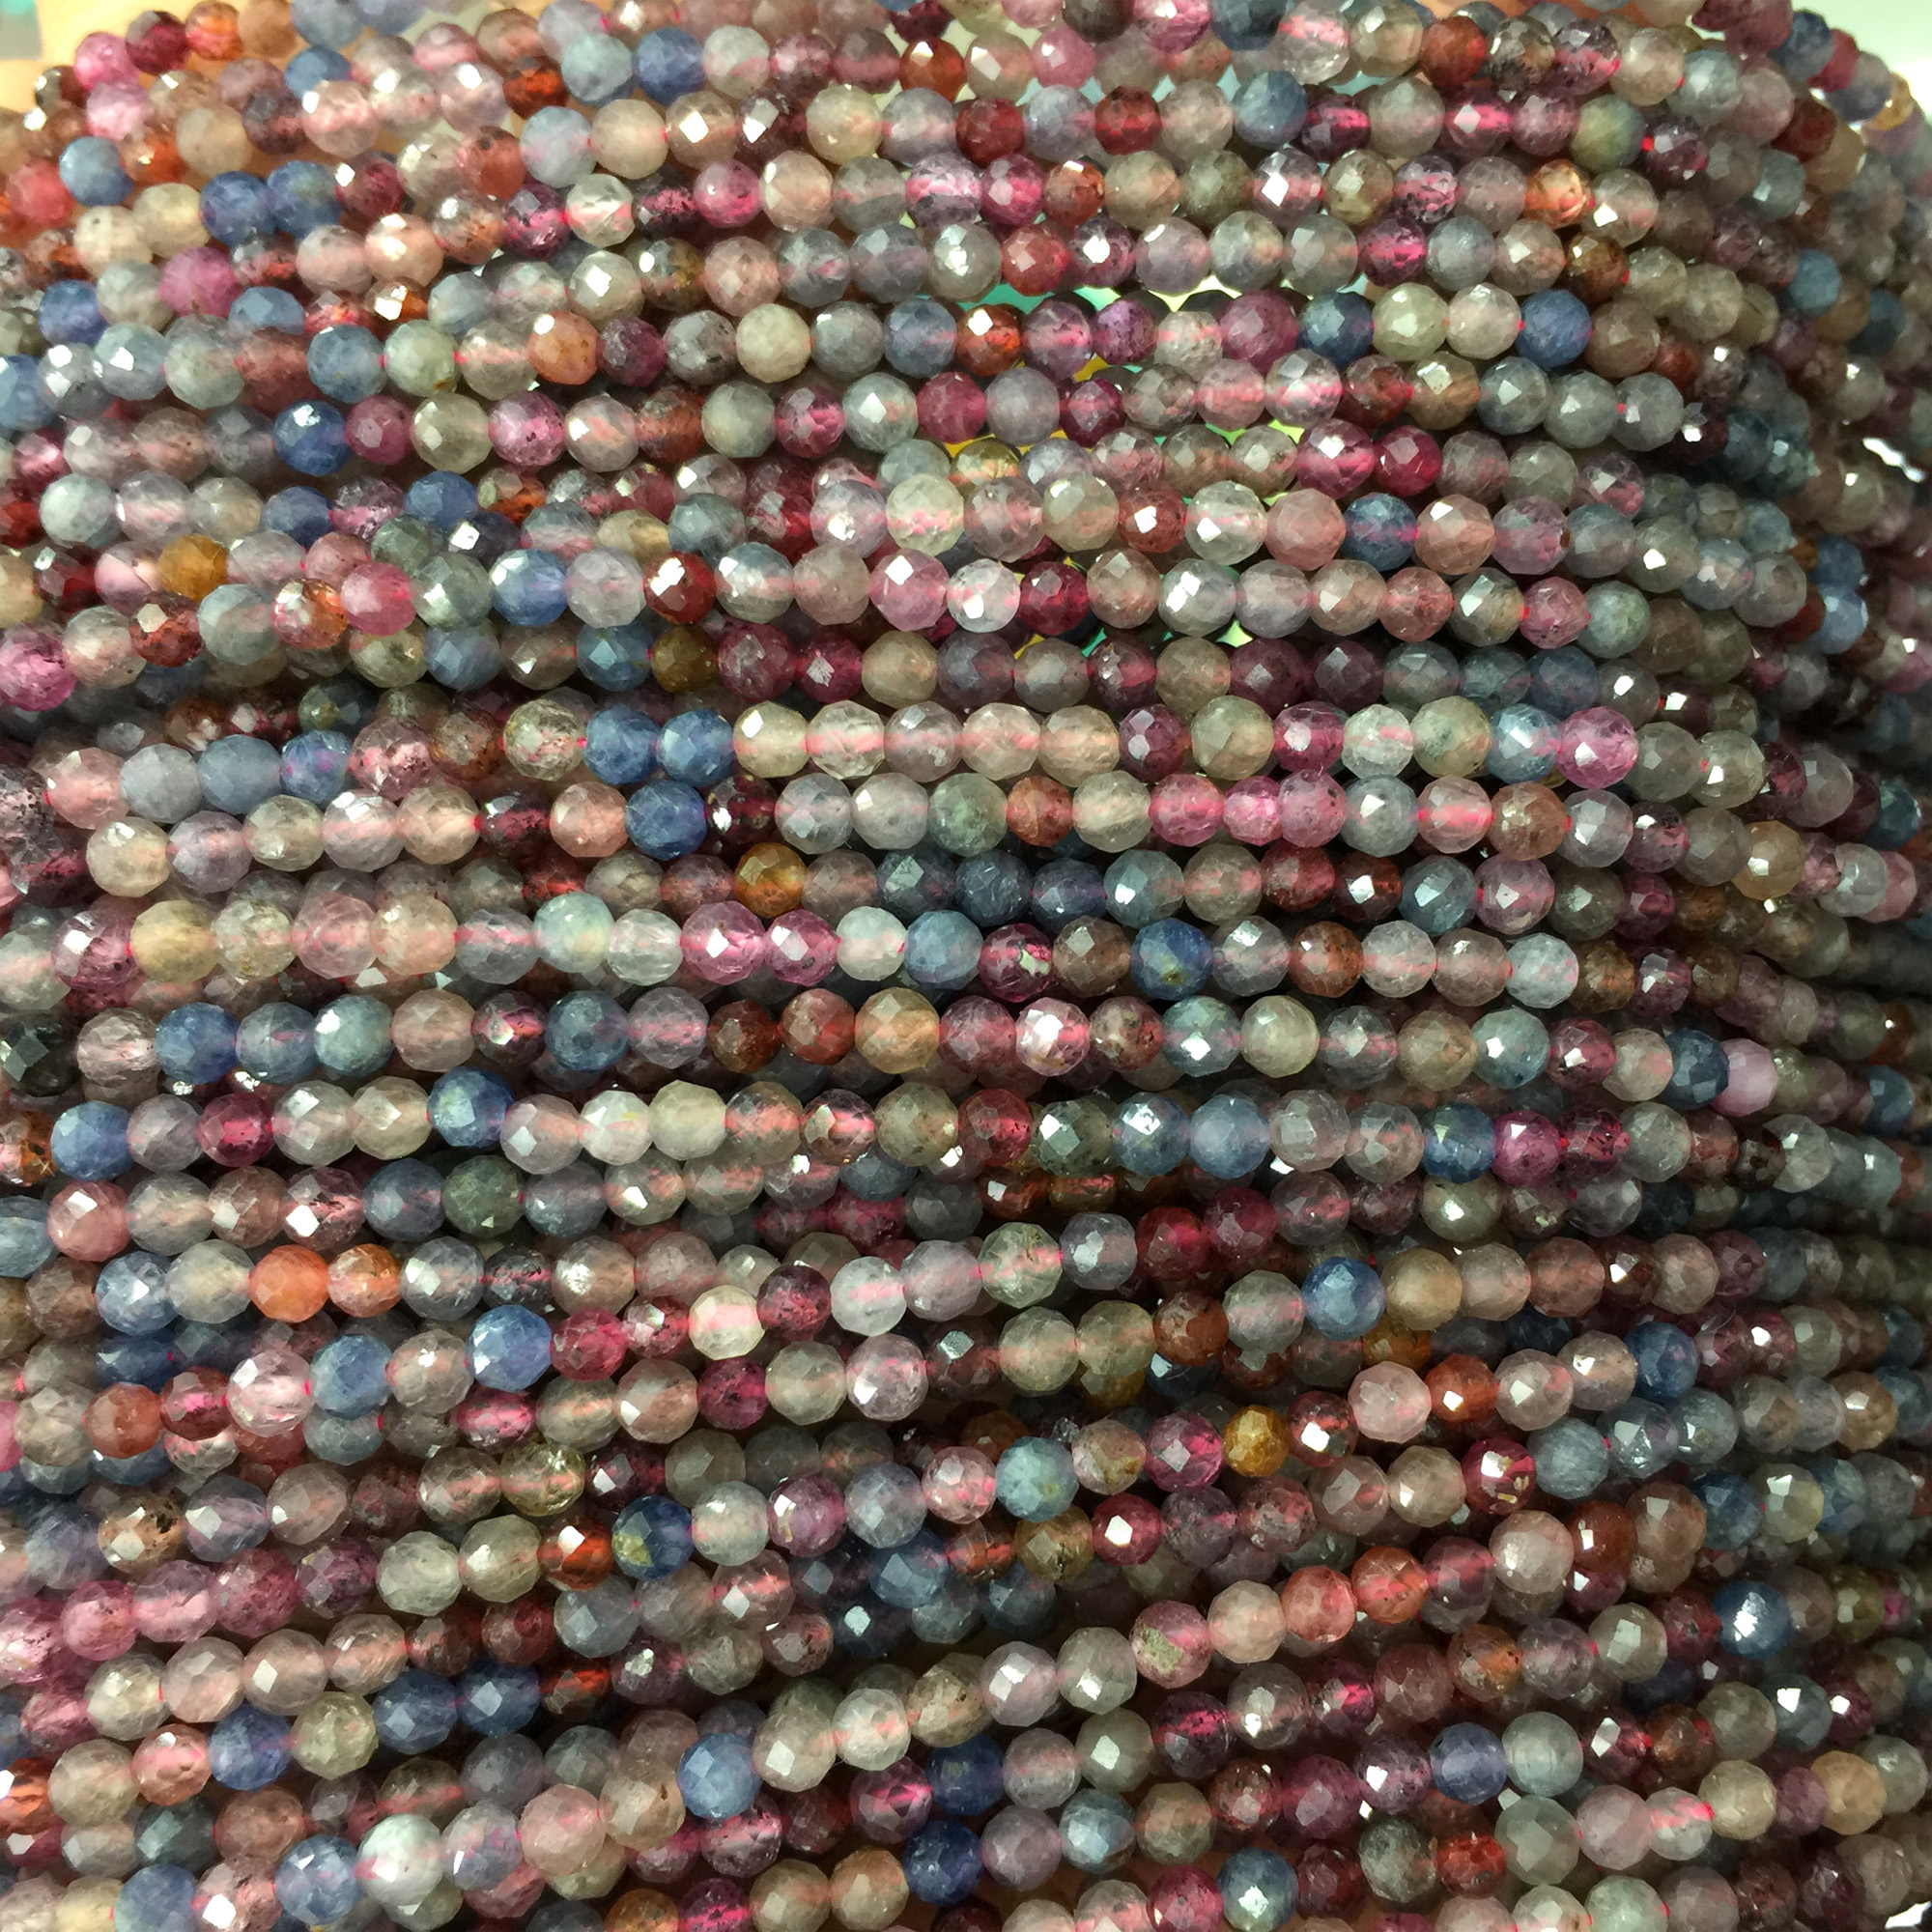 5g of 3mm Sterling Silver Round Beads Approximately 75 beads